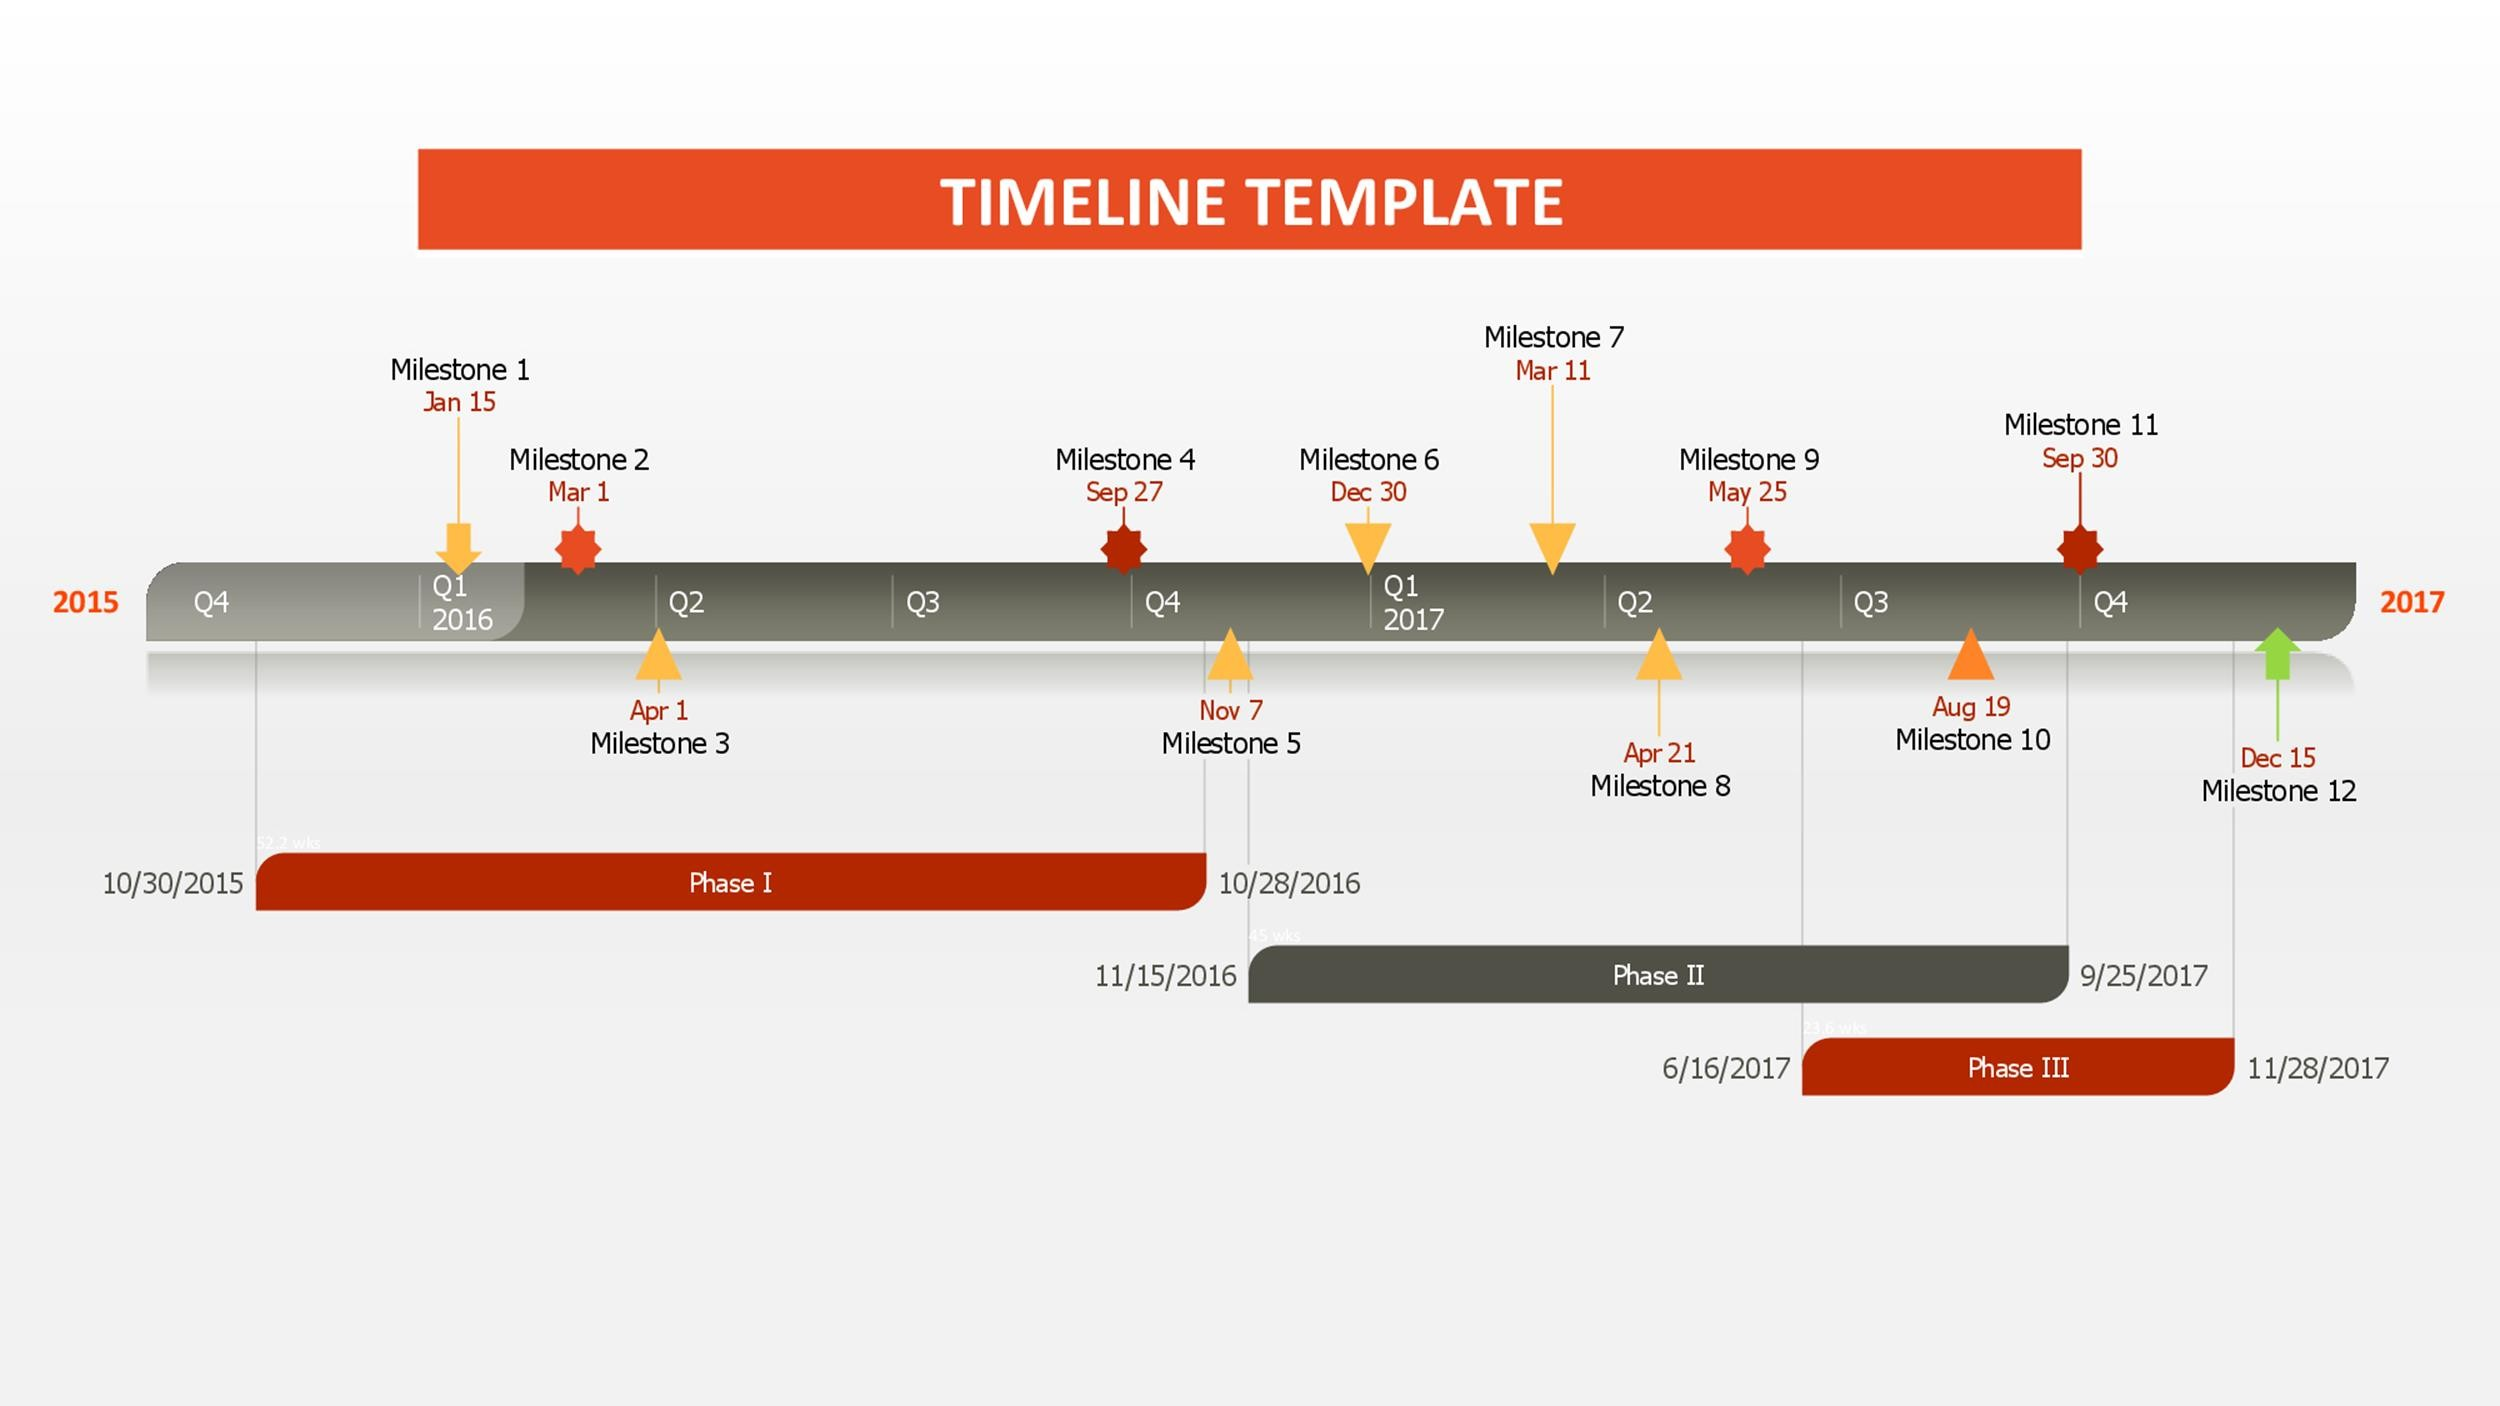 30 timeline templates excel power point word template lab free timeline template 03 toneelgroepblik Images